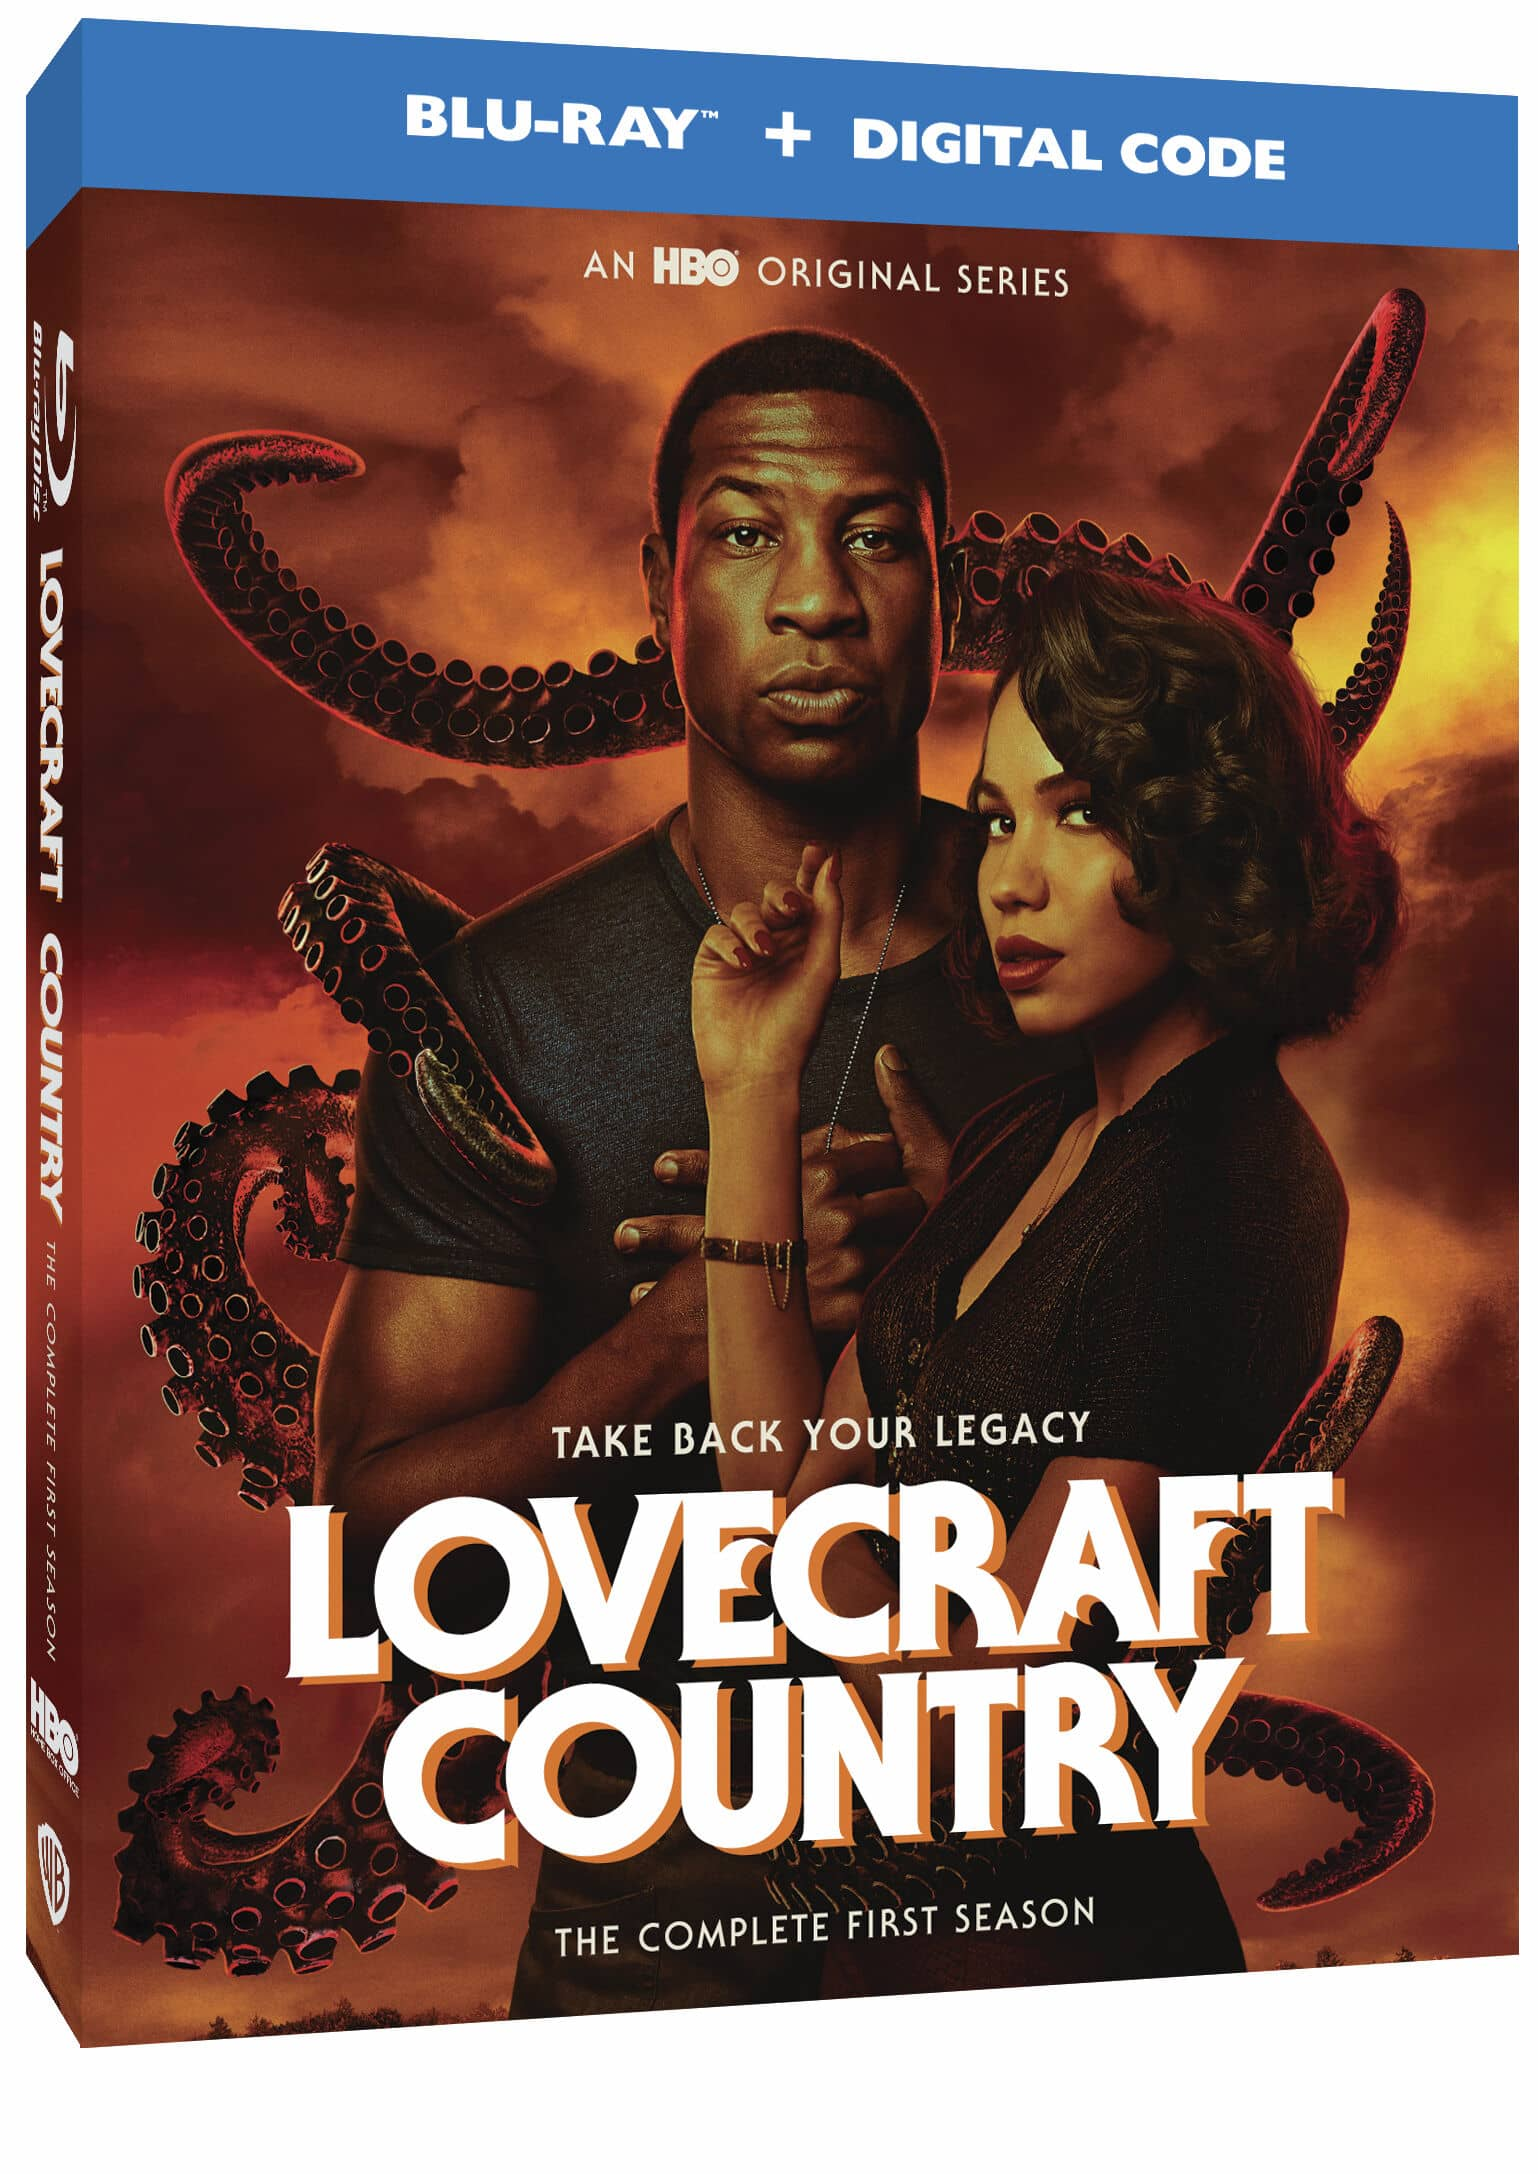 Lovecraft CountrySeason 1 Blu-ray Box Cover Artwork